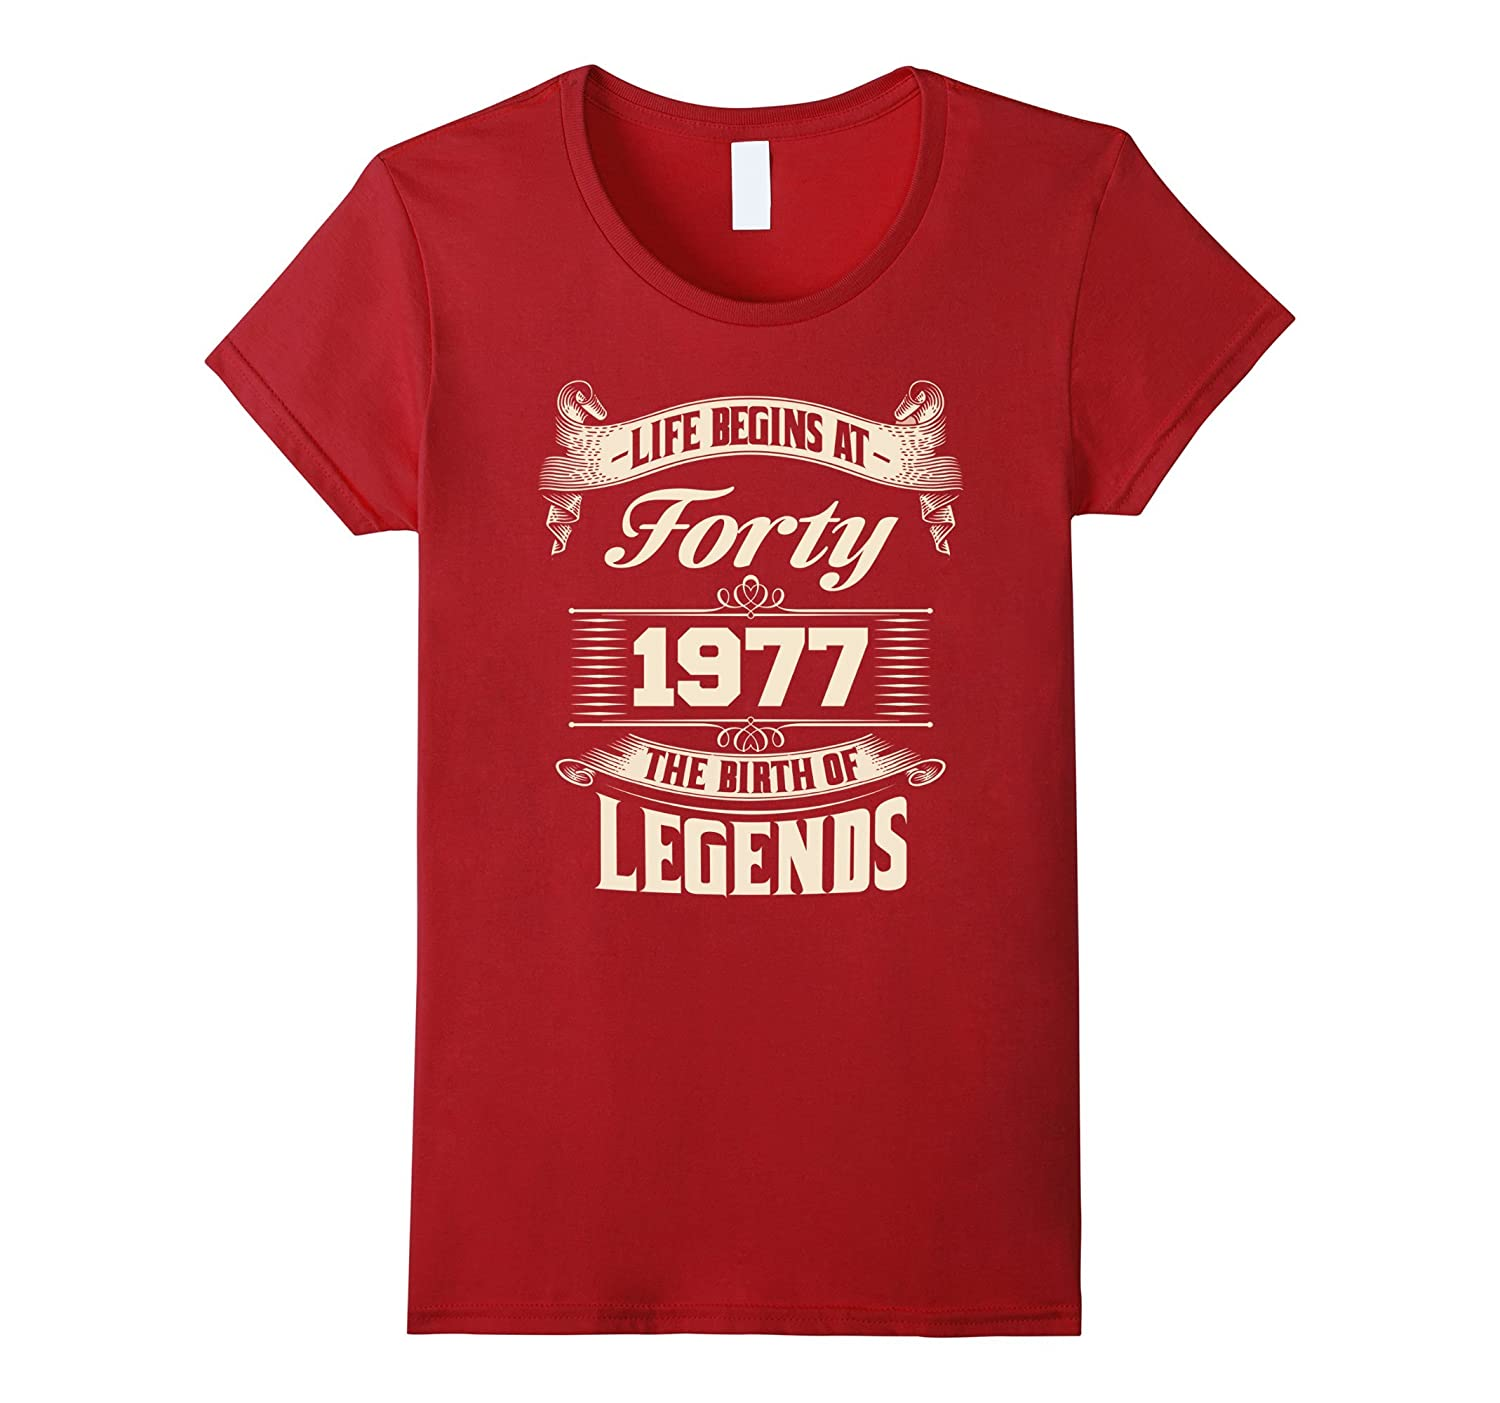 Life Begins At 40th 1977 The Birth Of Legends T Shirt